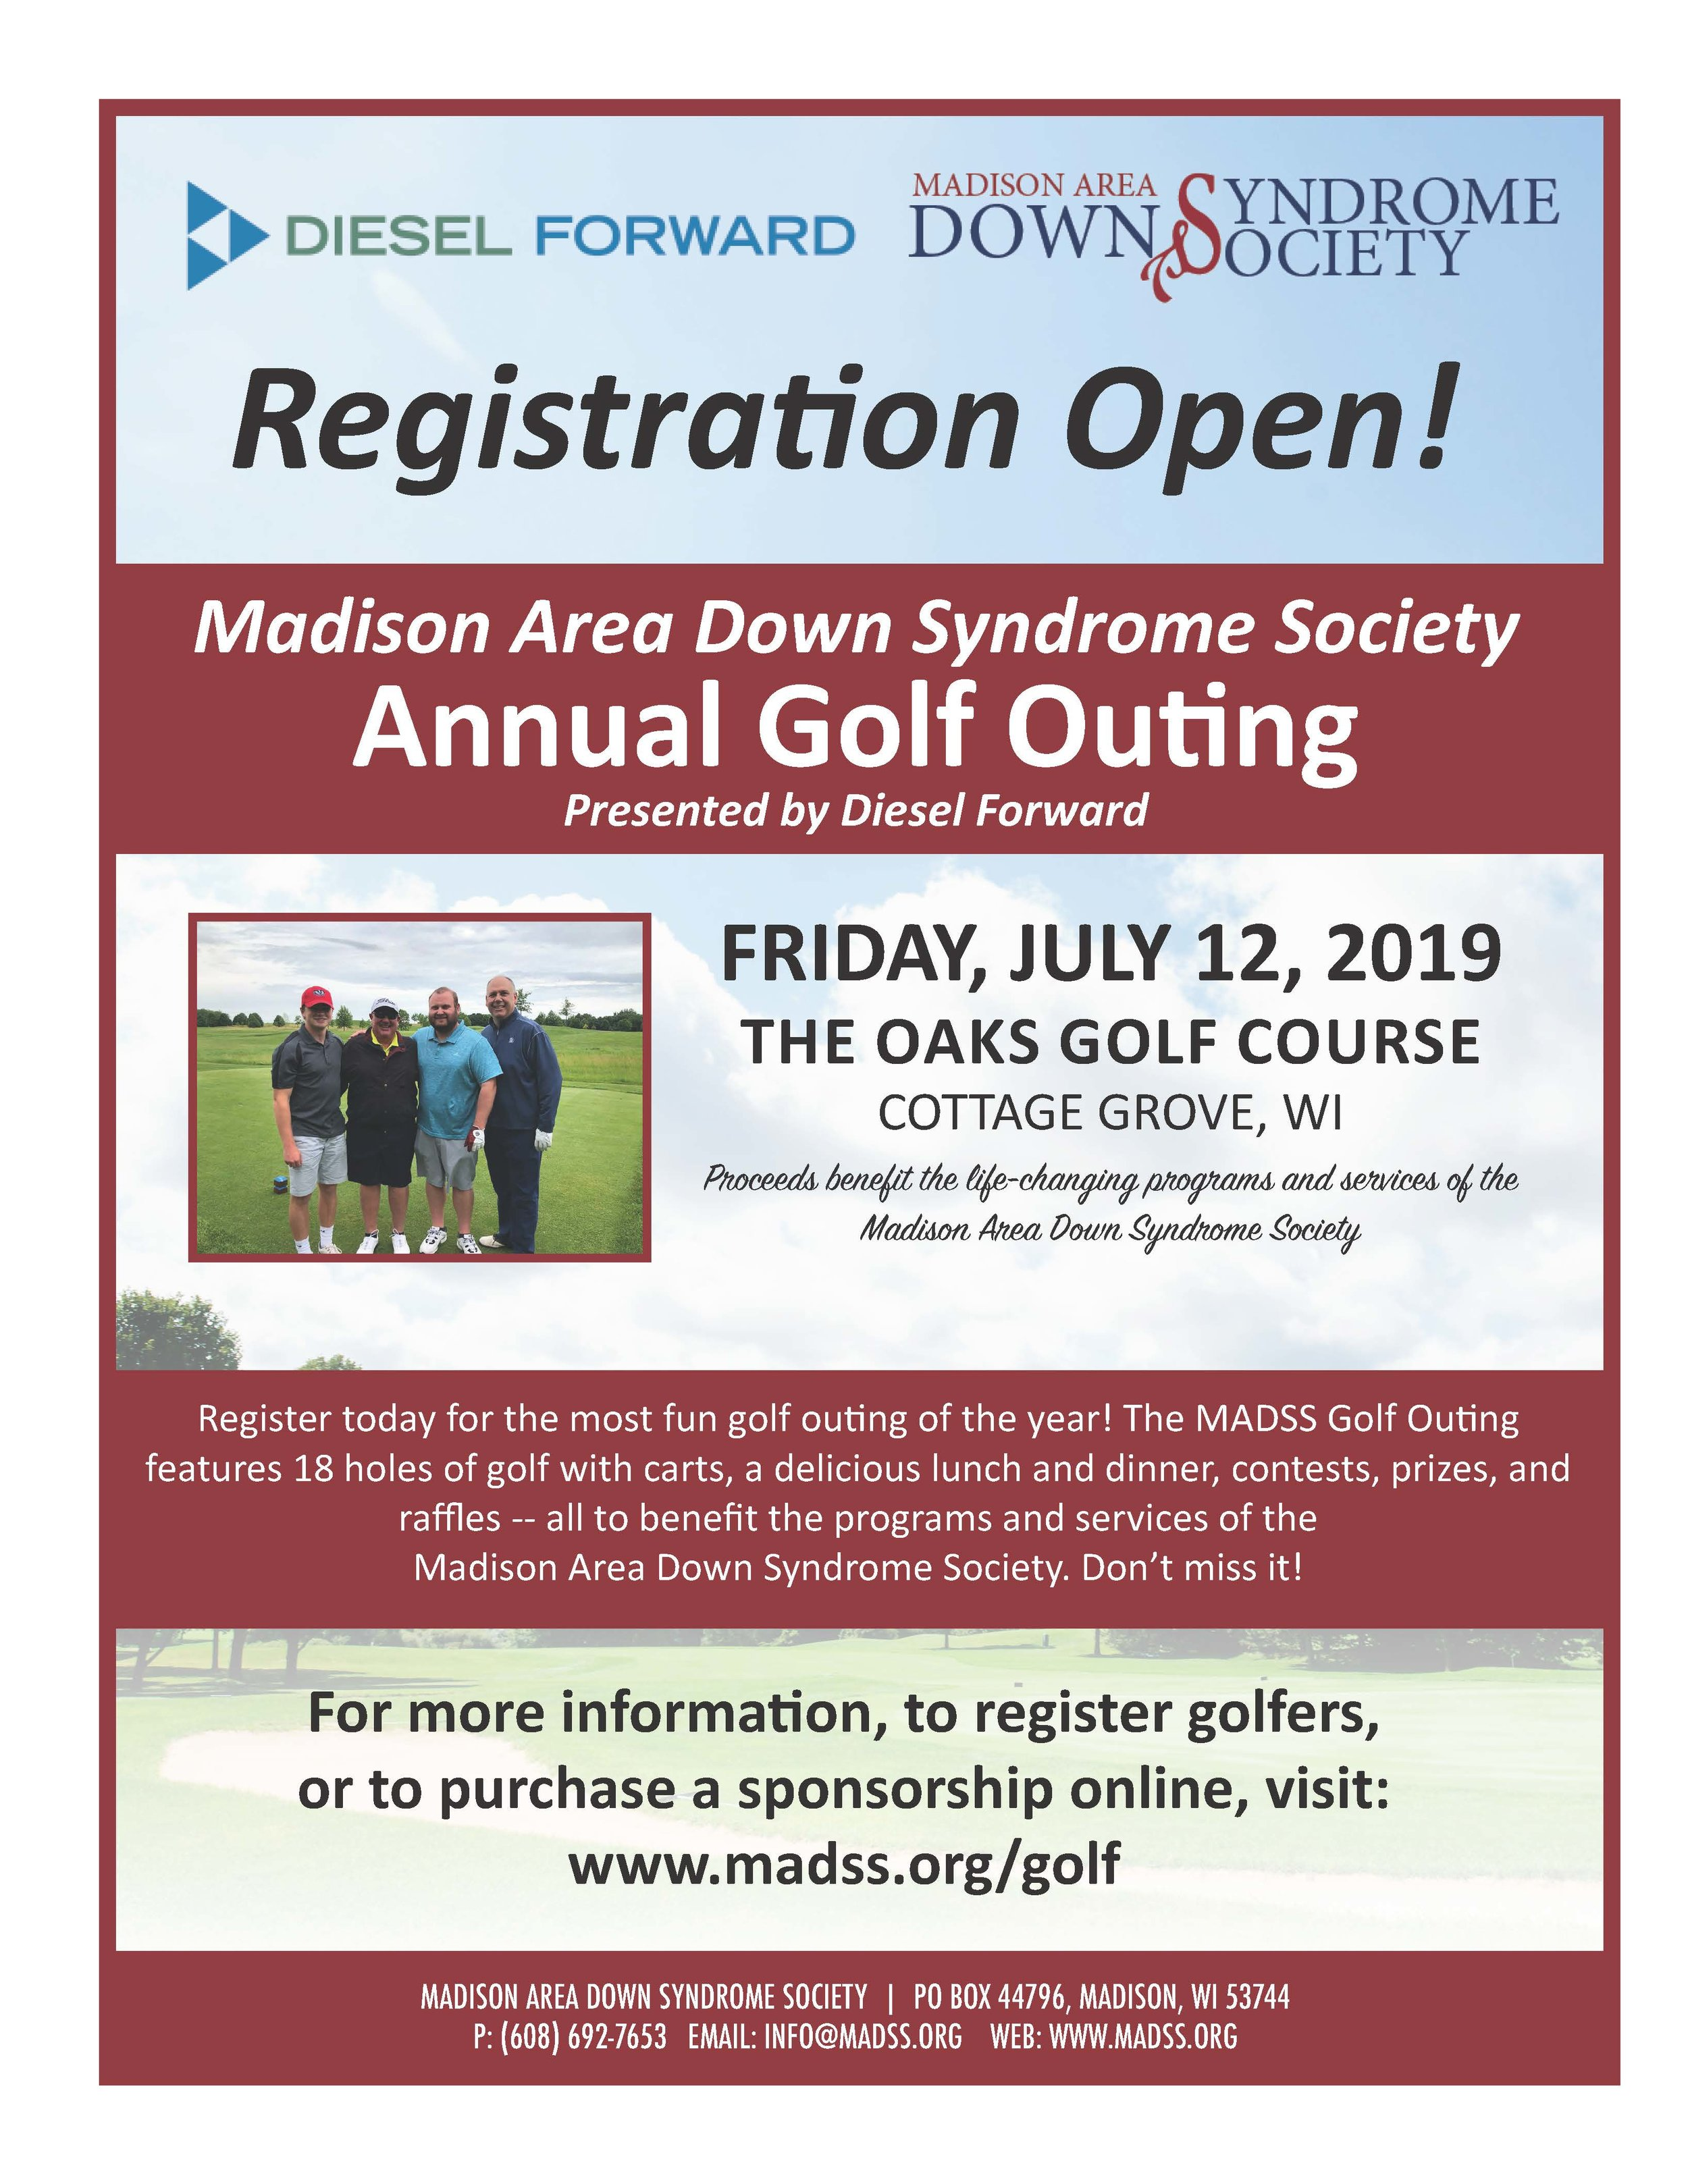 MADSS Golf Outing Registration 2019.jpg